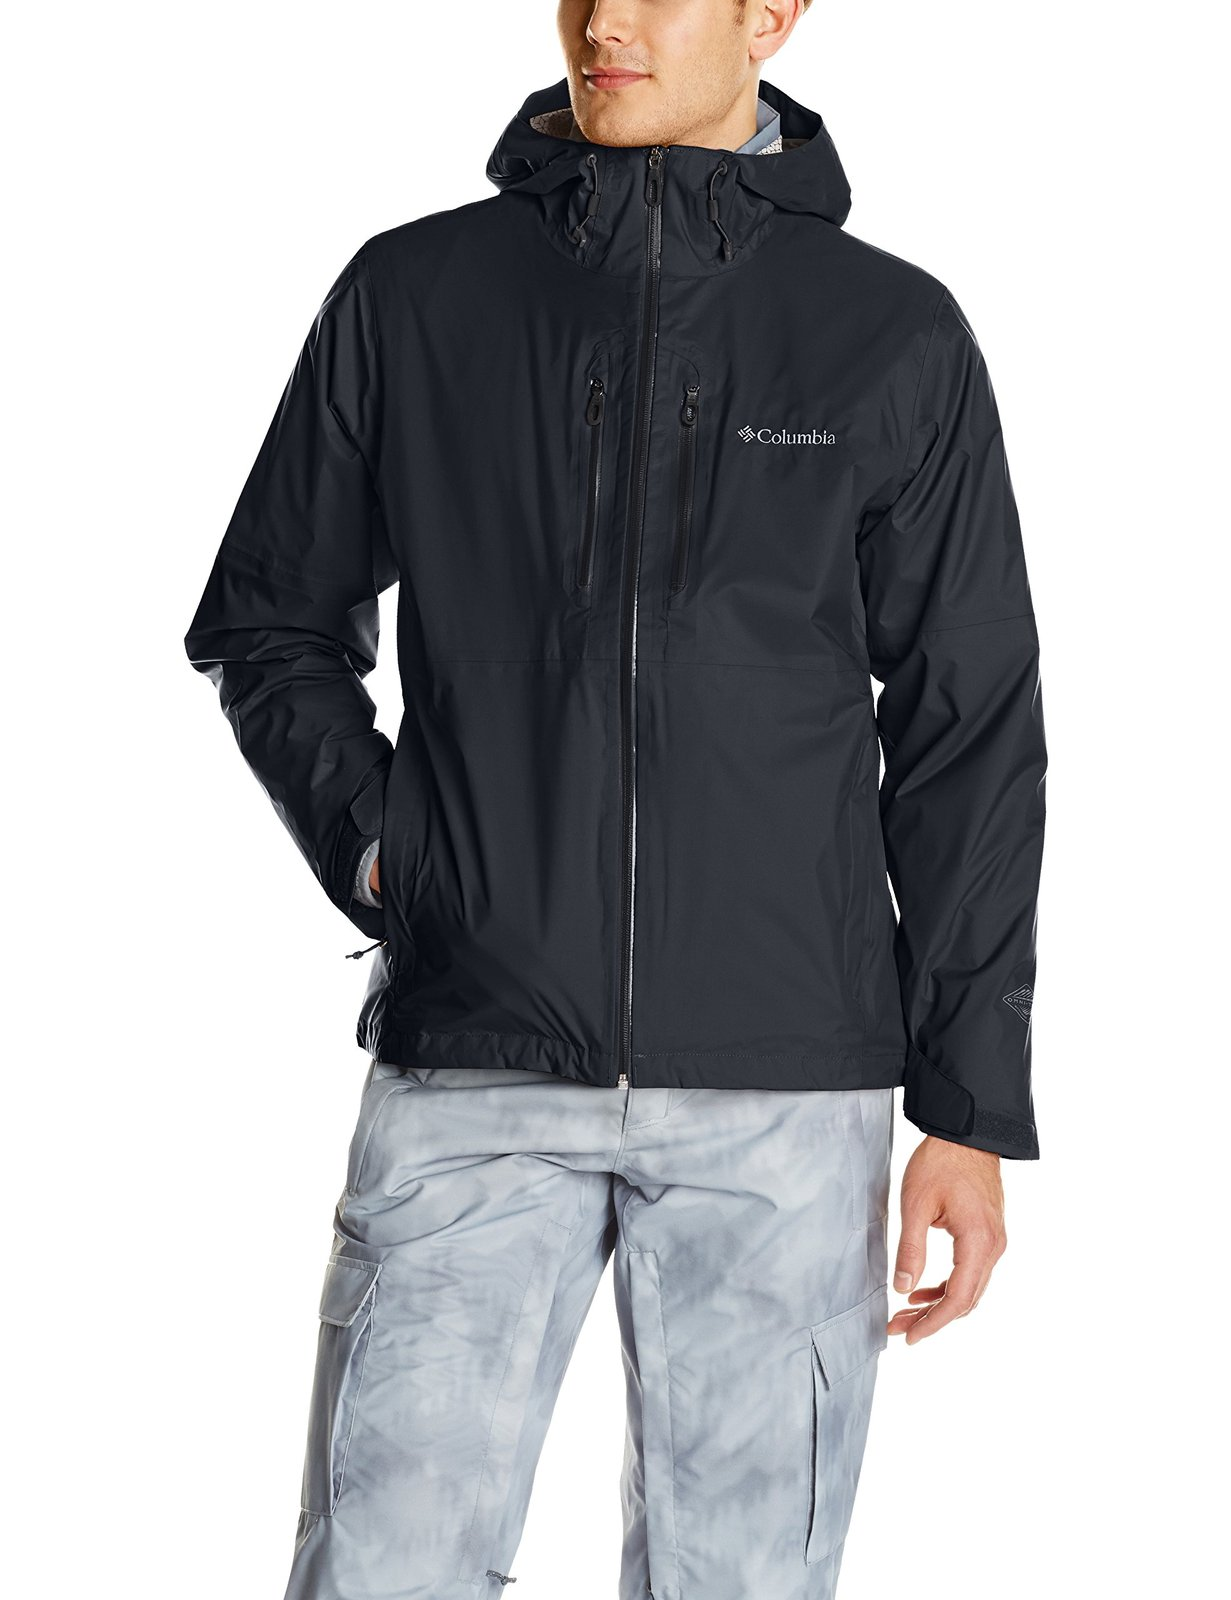 Columbia Men's Northwest Traveler Interchange Jacket, Black, Large